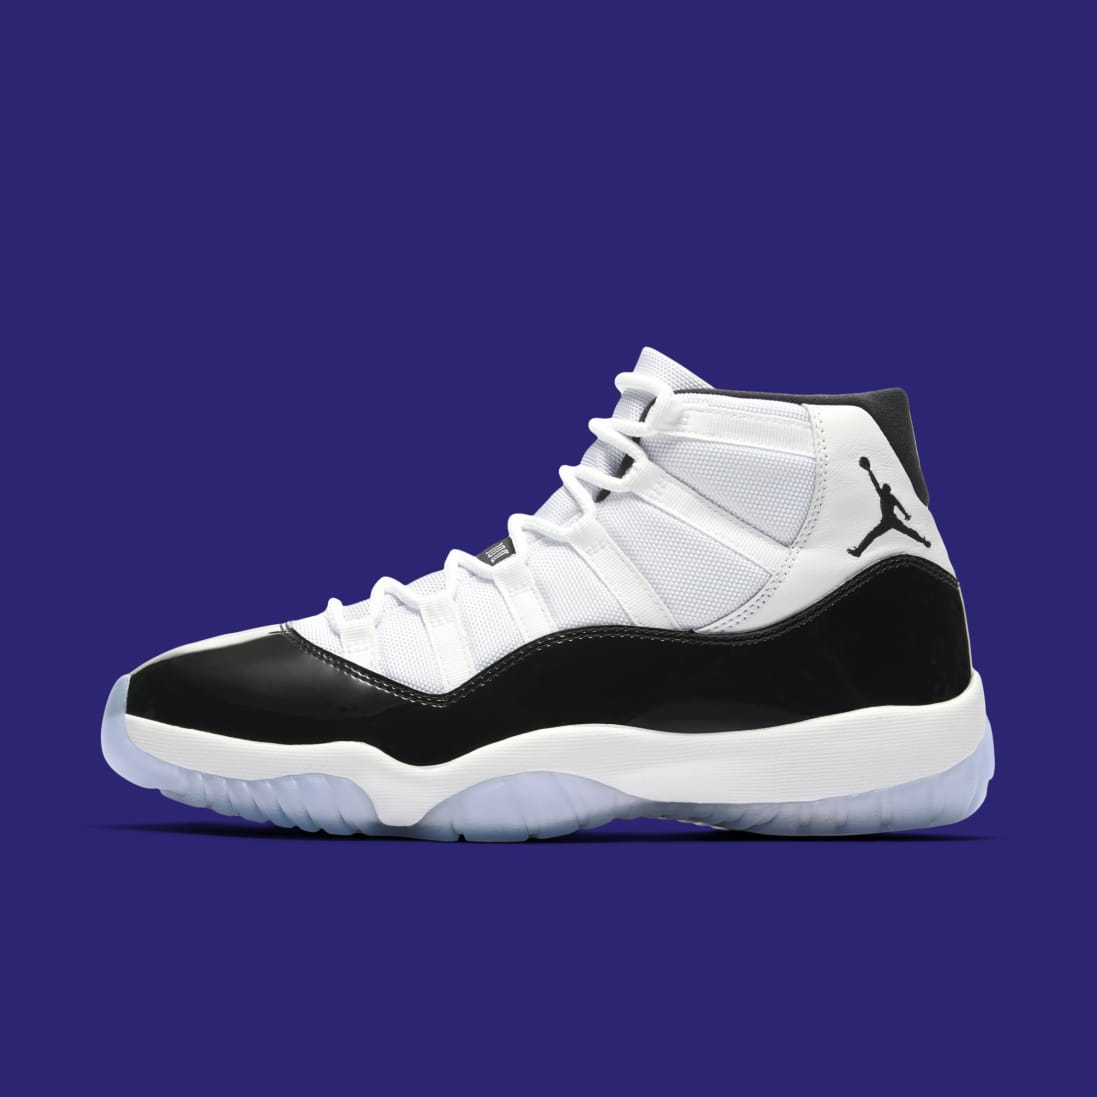 450a17064de Concord  Air Jordan 11s Will Be Easy to Get and That s a Good Thing ...